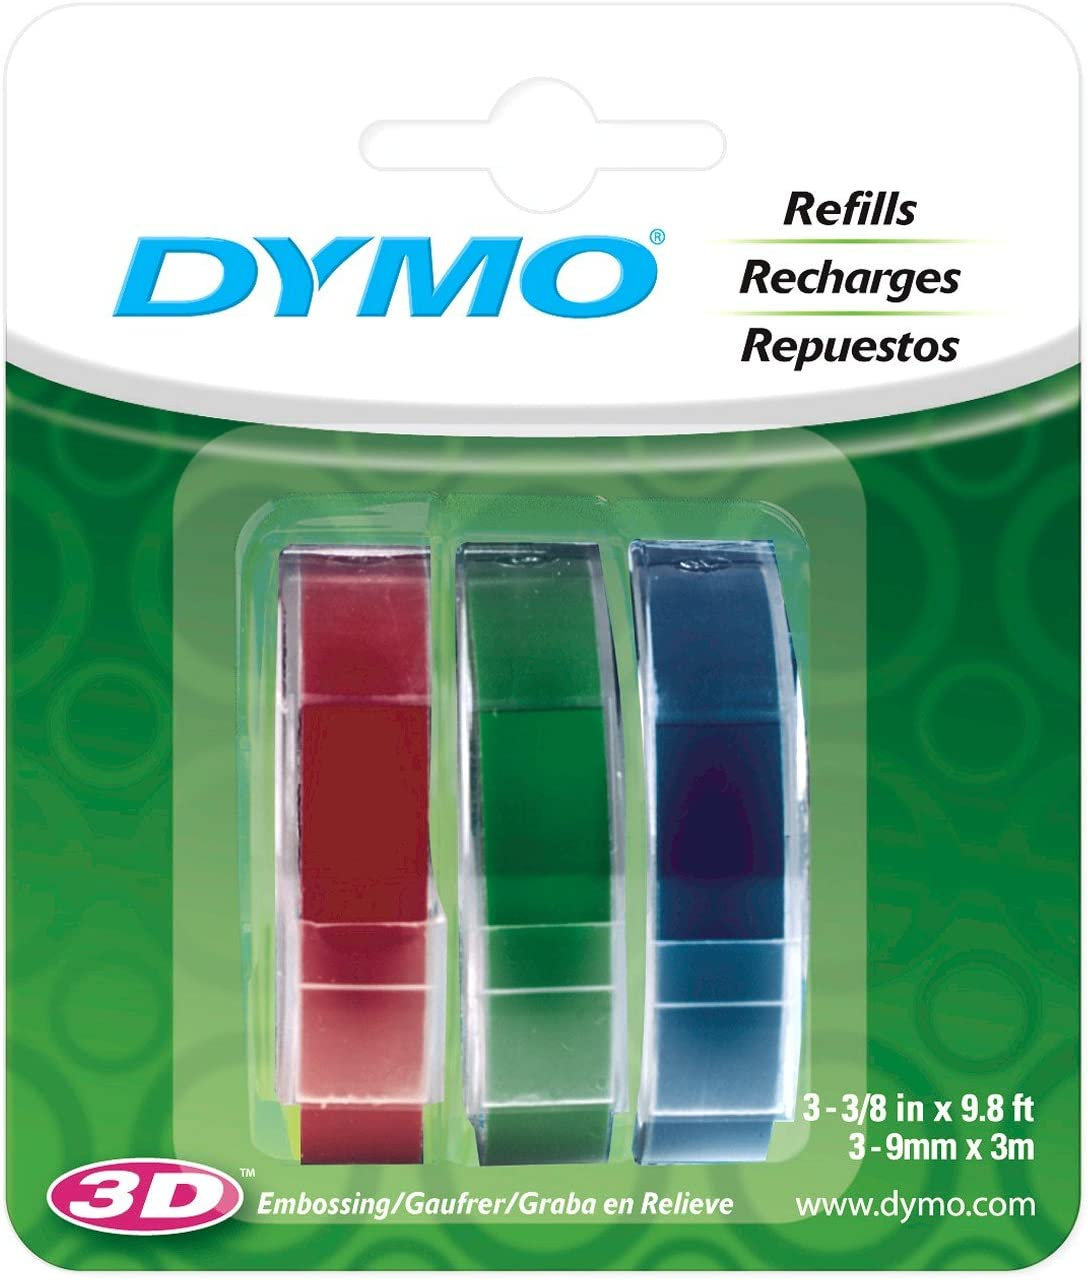 Dymo 30252 Compatible BPA Free Yellow Tint Resistant 1-1//8 x 3-1//2 450 Eseller Direct/® 8 Pack 350 labels per Roll 28mm x 89mm Self Adhesive Address Labels 450 Turbo 450 Twin Turbo with Permanent all Weather Adhesive for Dymo LabelWriter 450